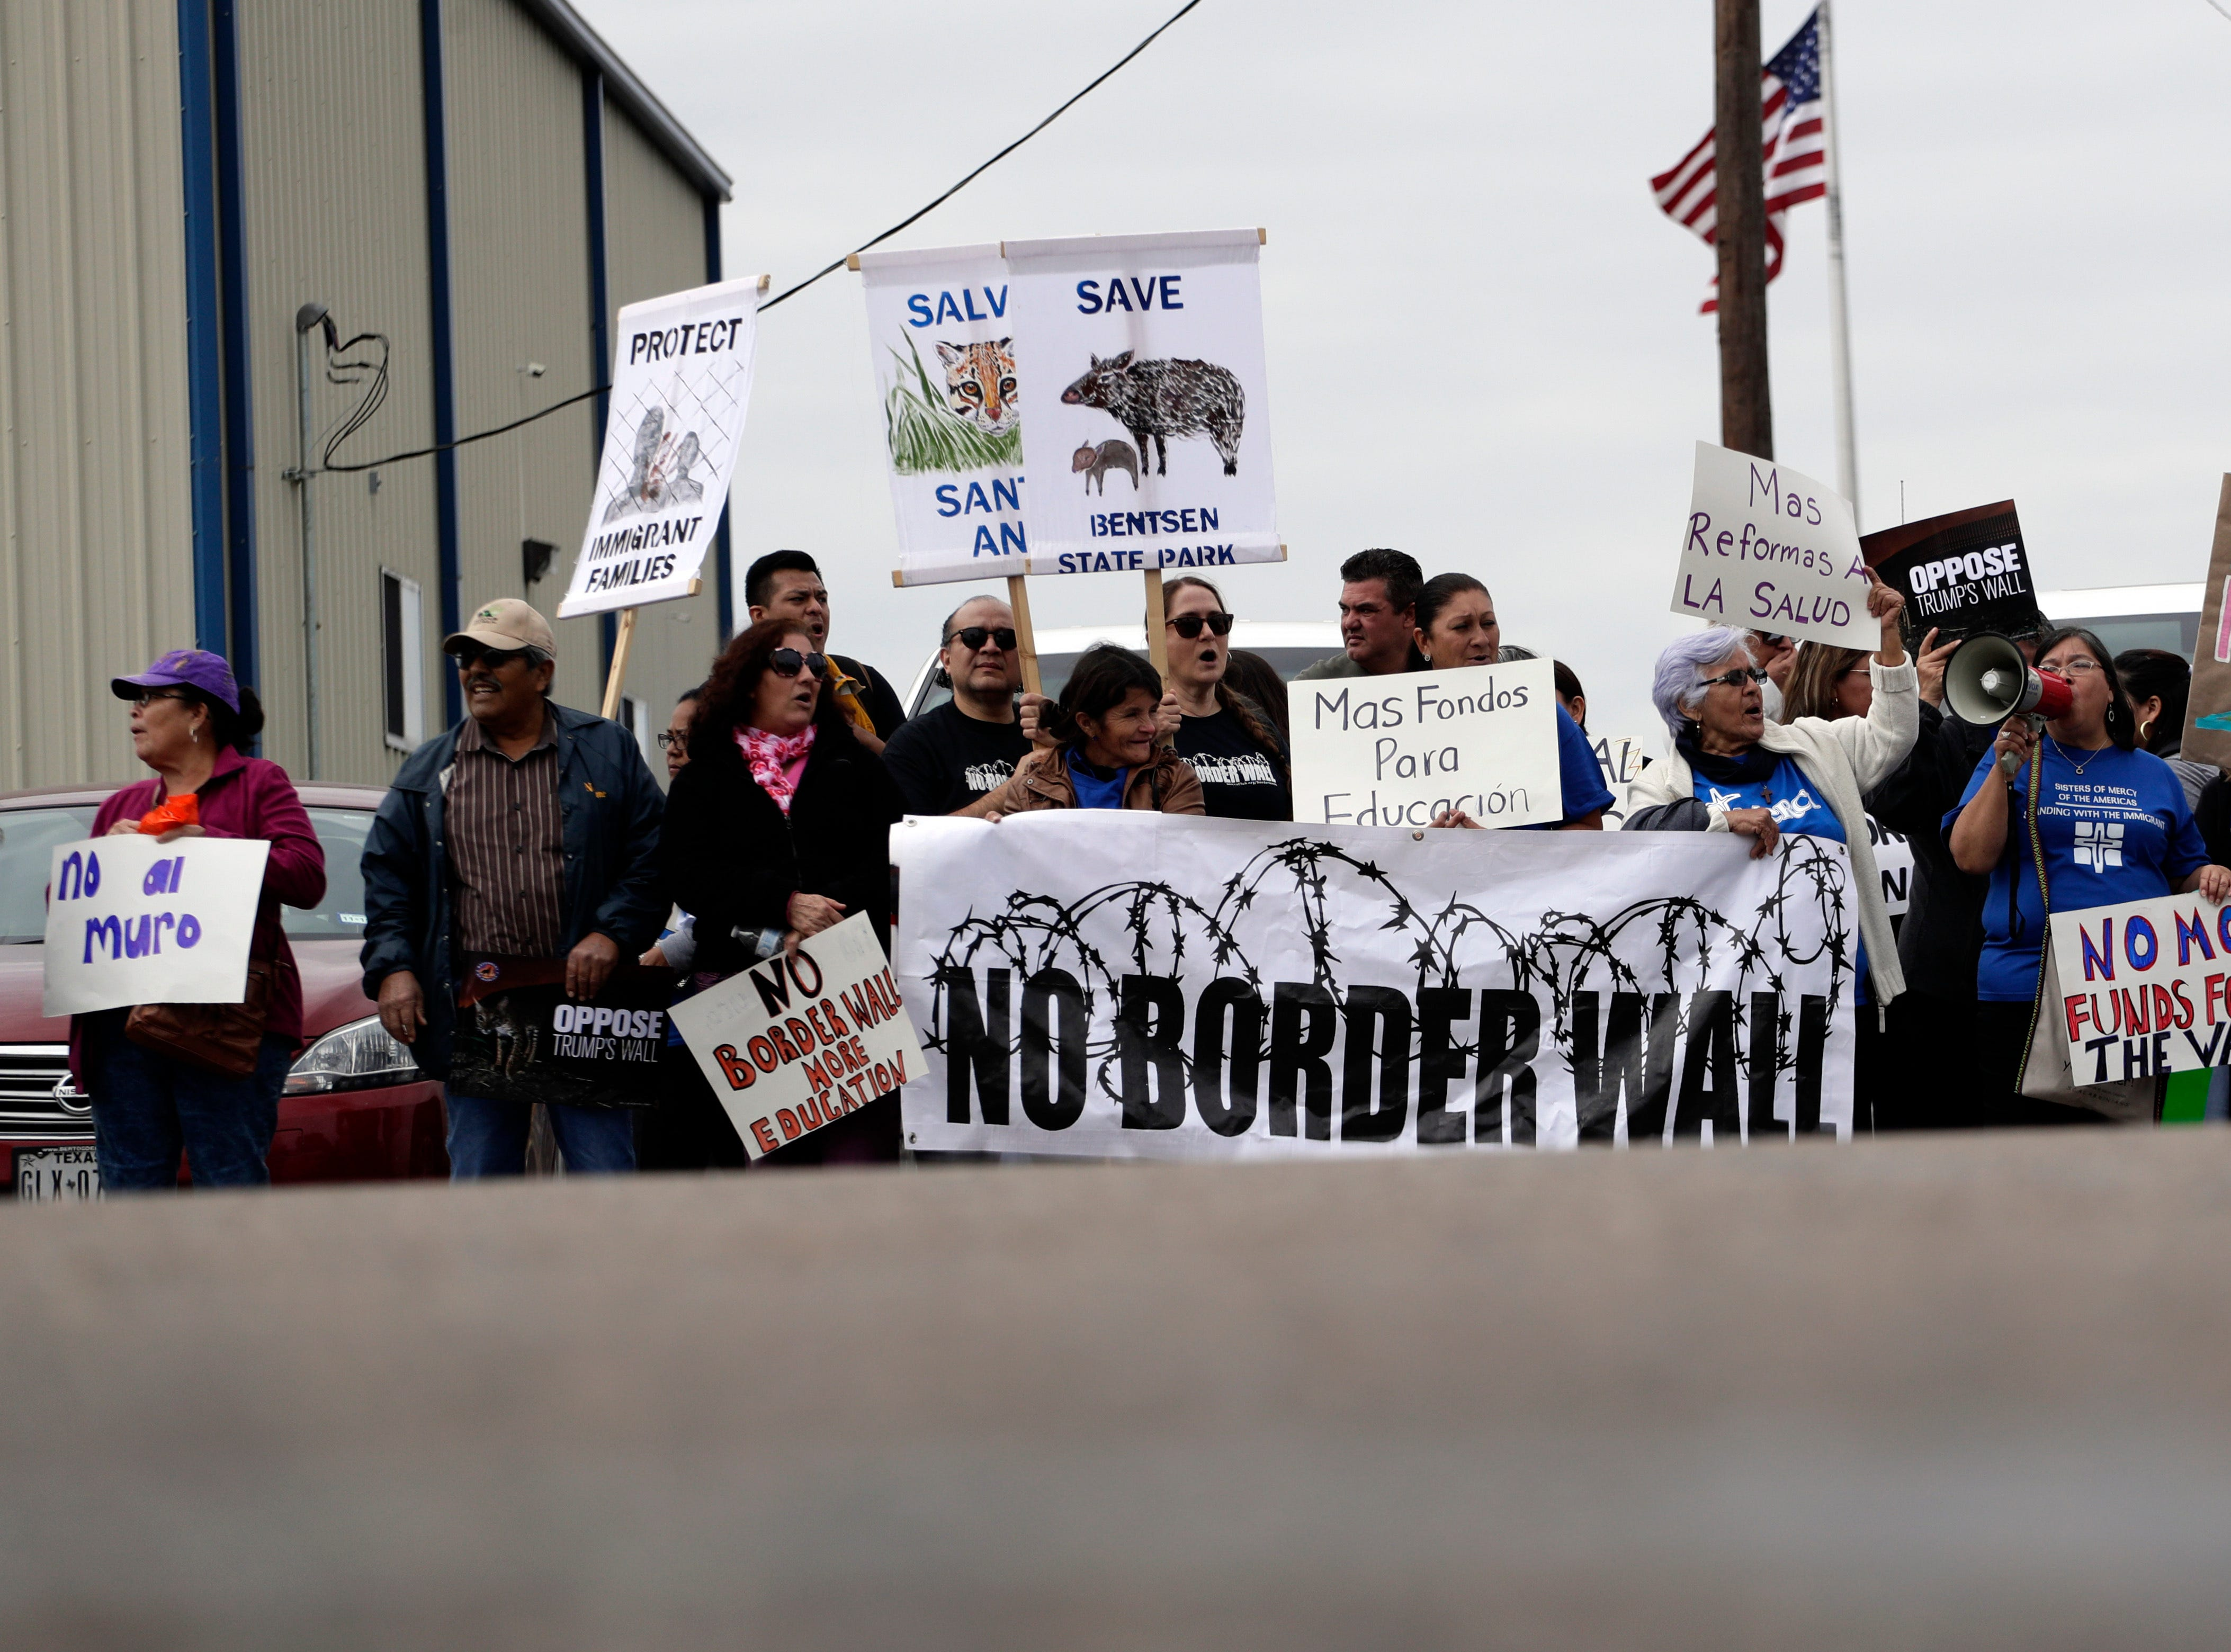 Groups opposed to border walls being built along the Texas-Mexico border gather outside the McAllen International Airport as they wait for the arrival of President Donald Trump who is making a visit to the southern border, Thursday, Jan. 10, 2019, in McAllen, Texas.